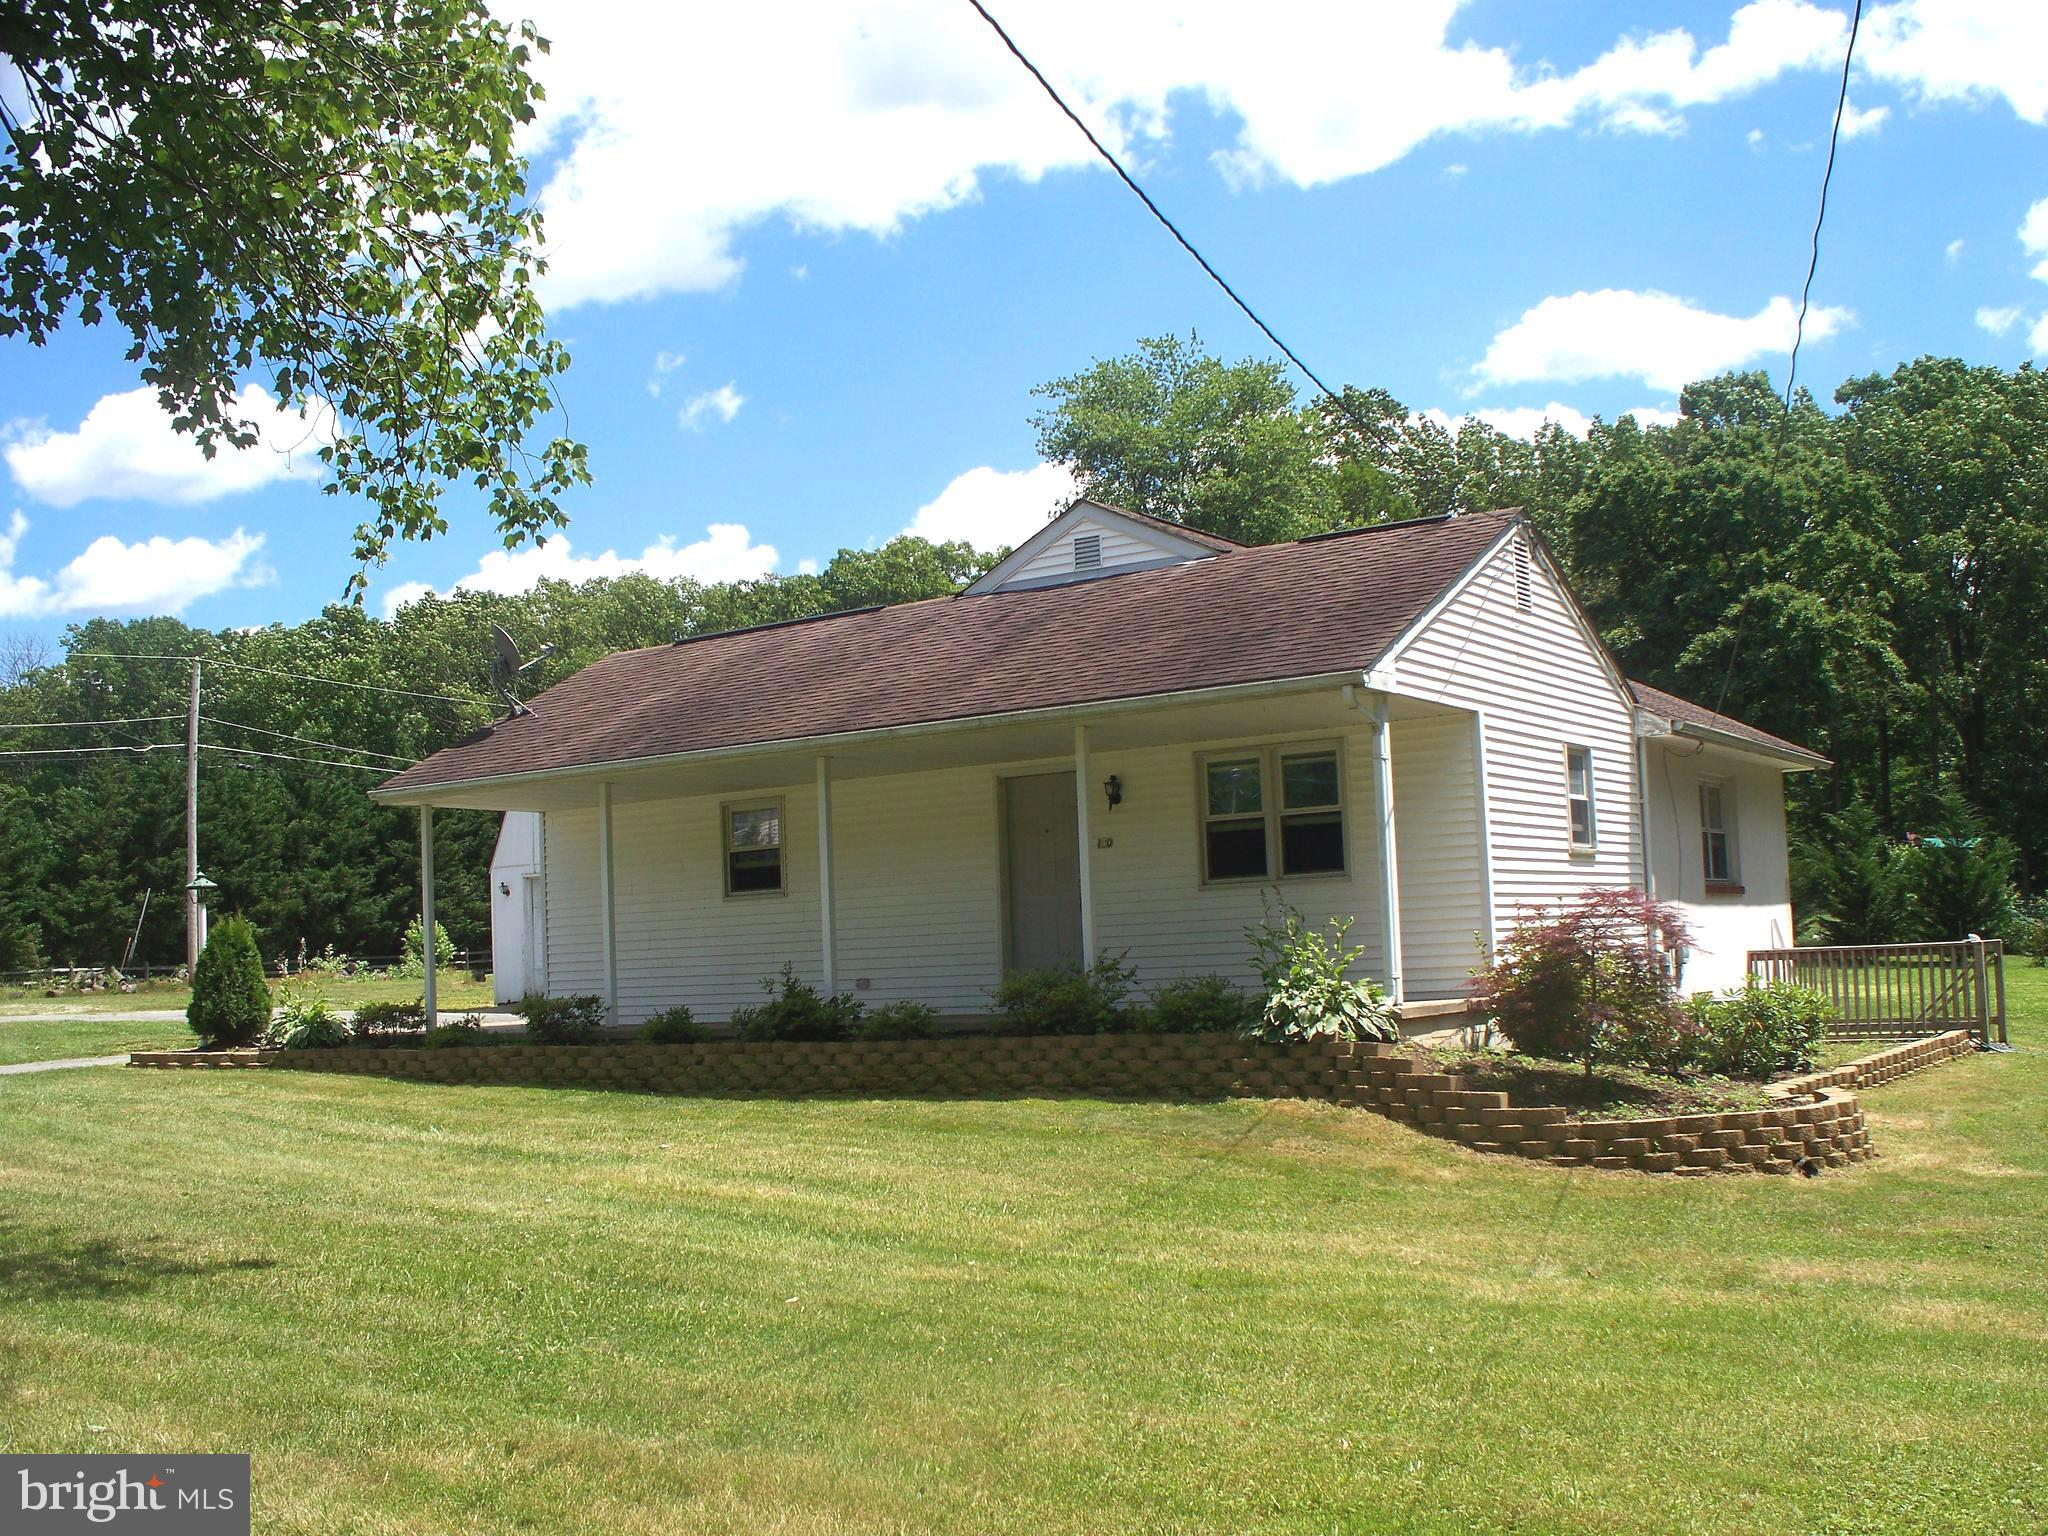 Open Floor Plan, updated rancher on 1 acre at the corner of Winch Road and Linton Run Road, within 3